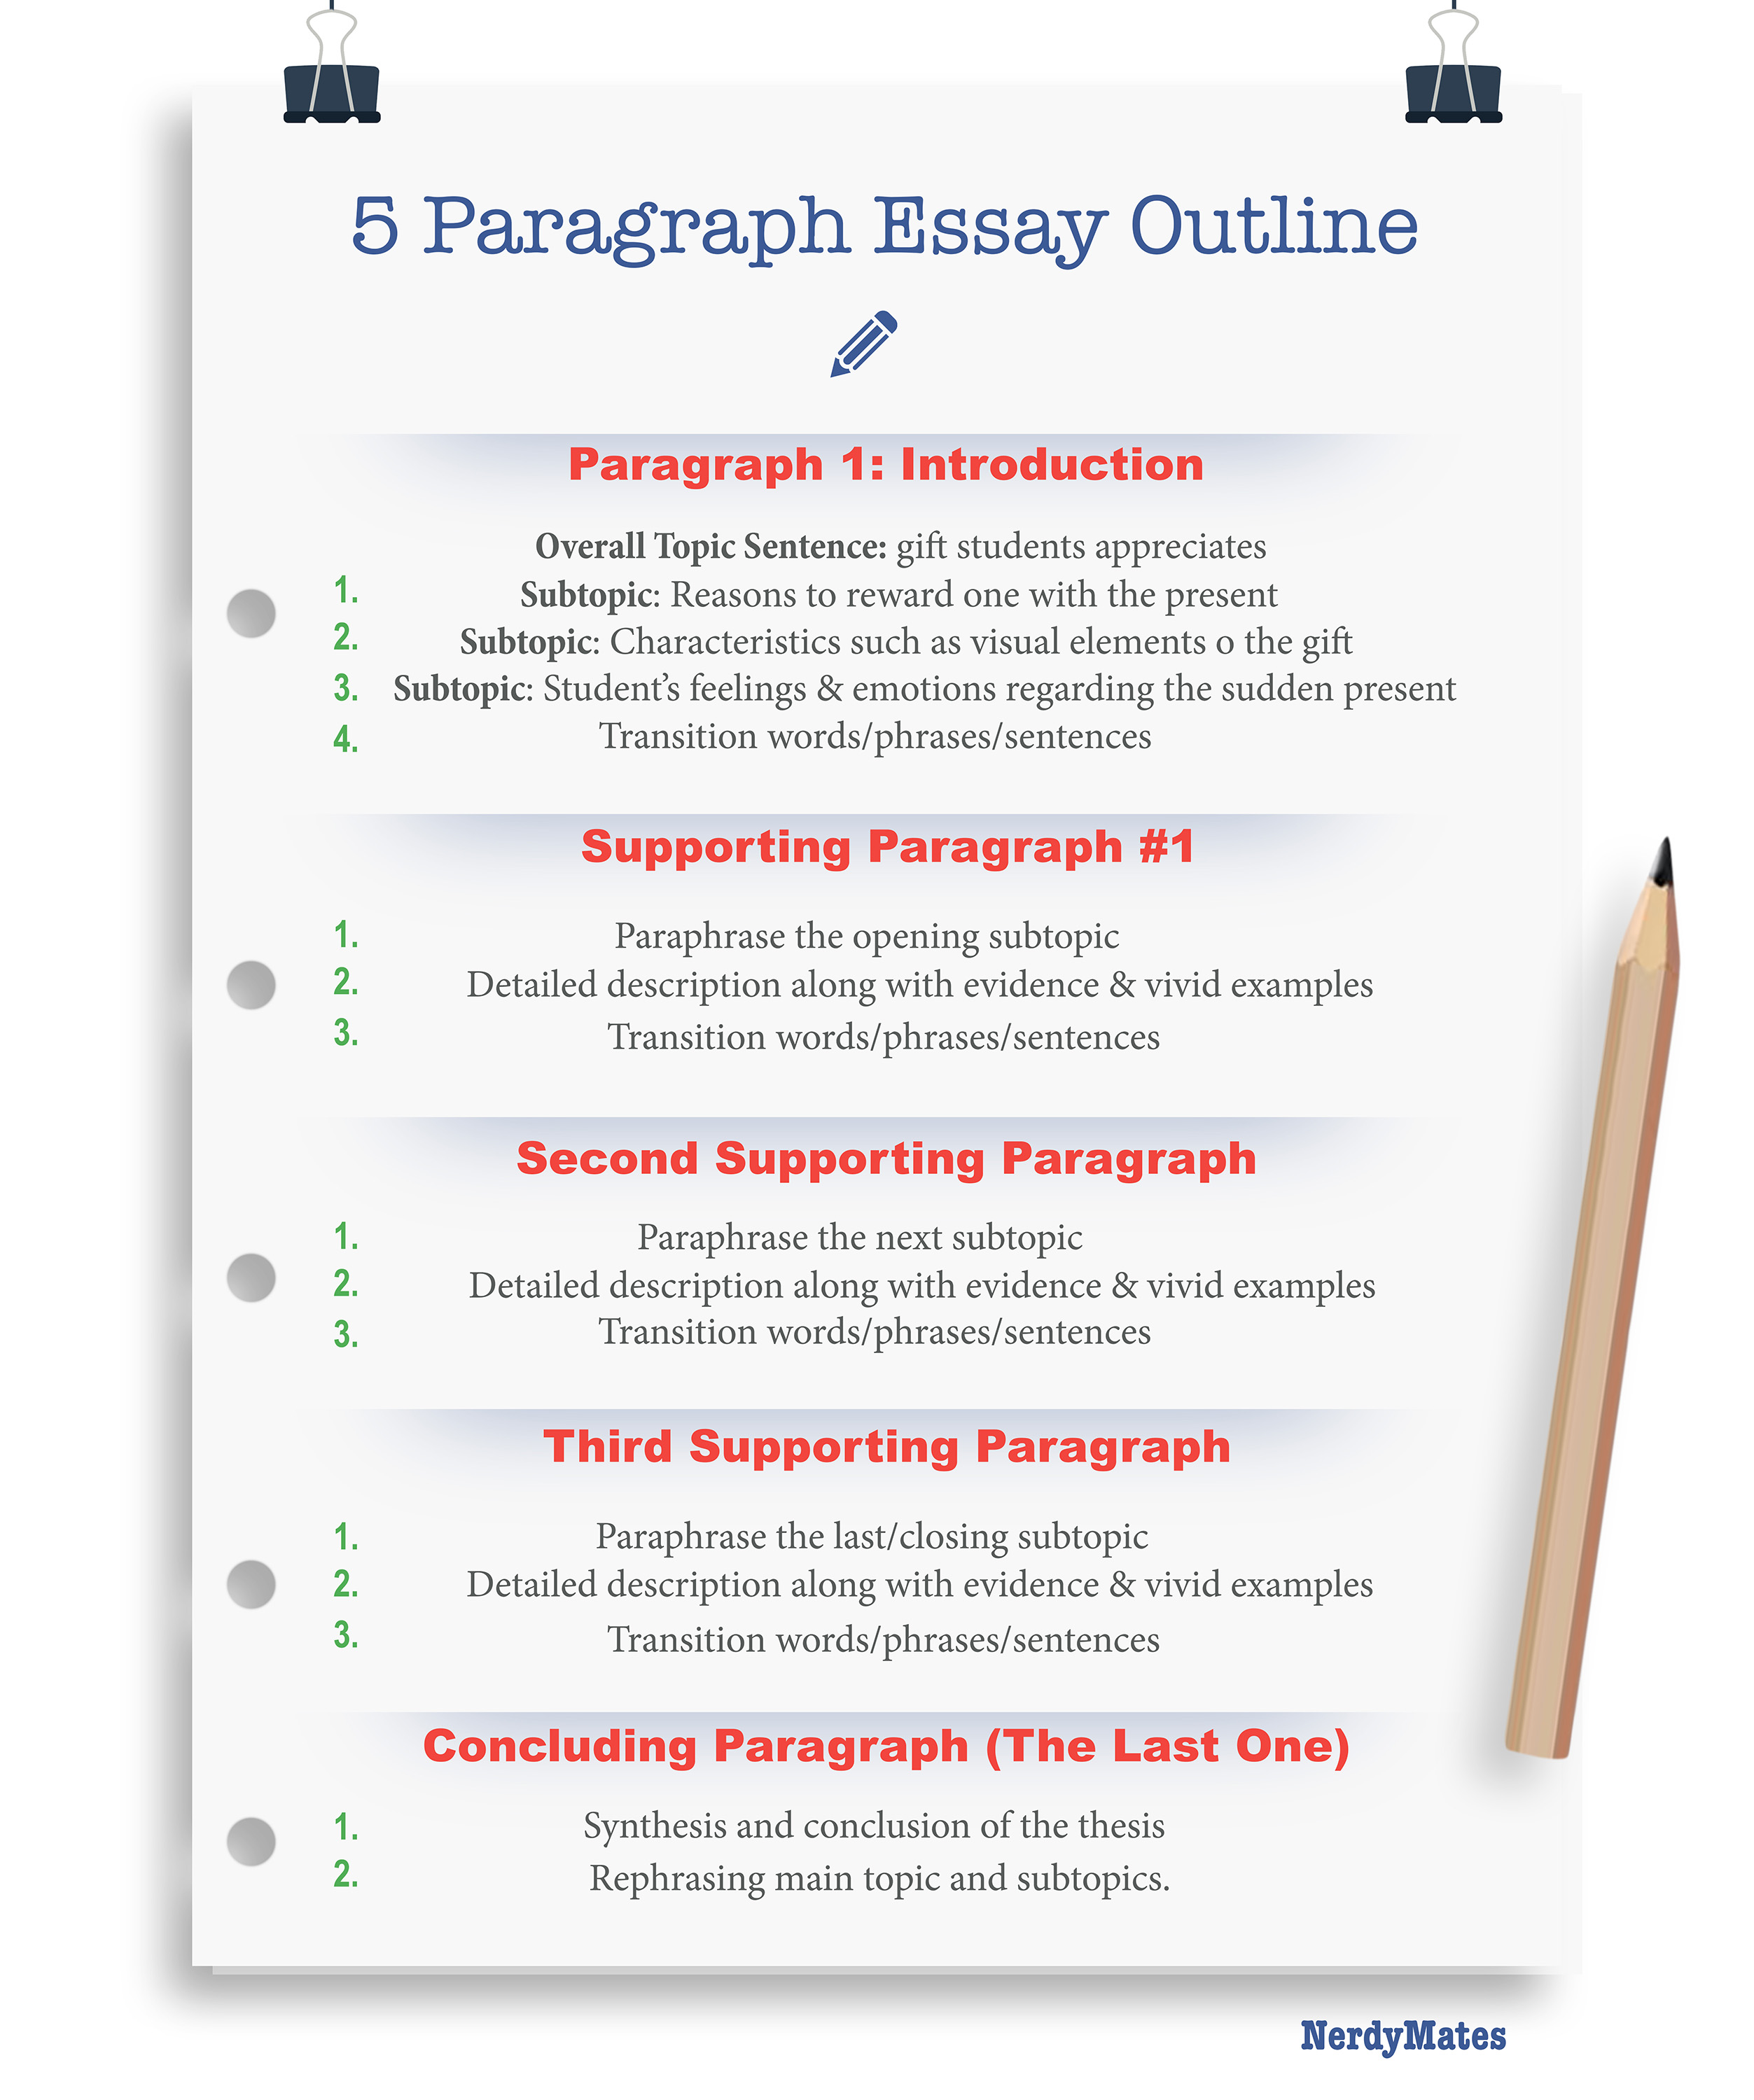 Outlining the Essay's Five Paragraphs One By One